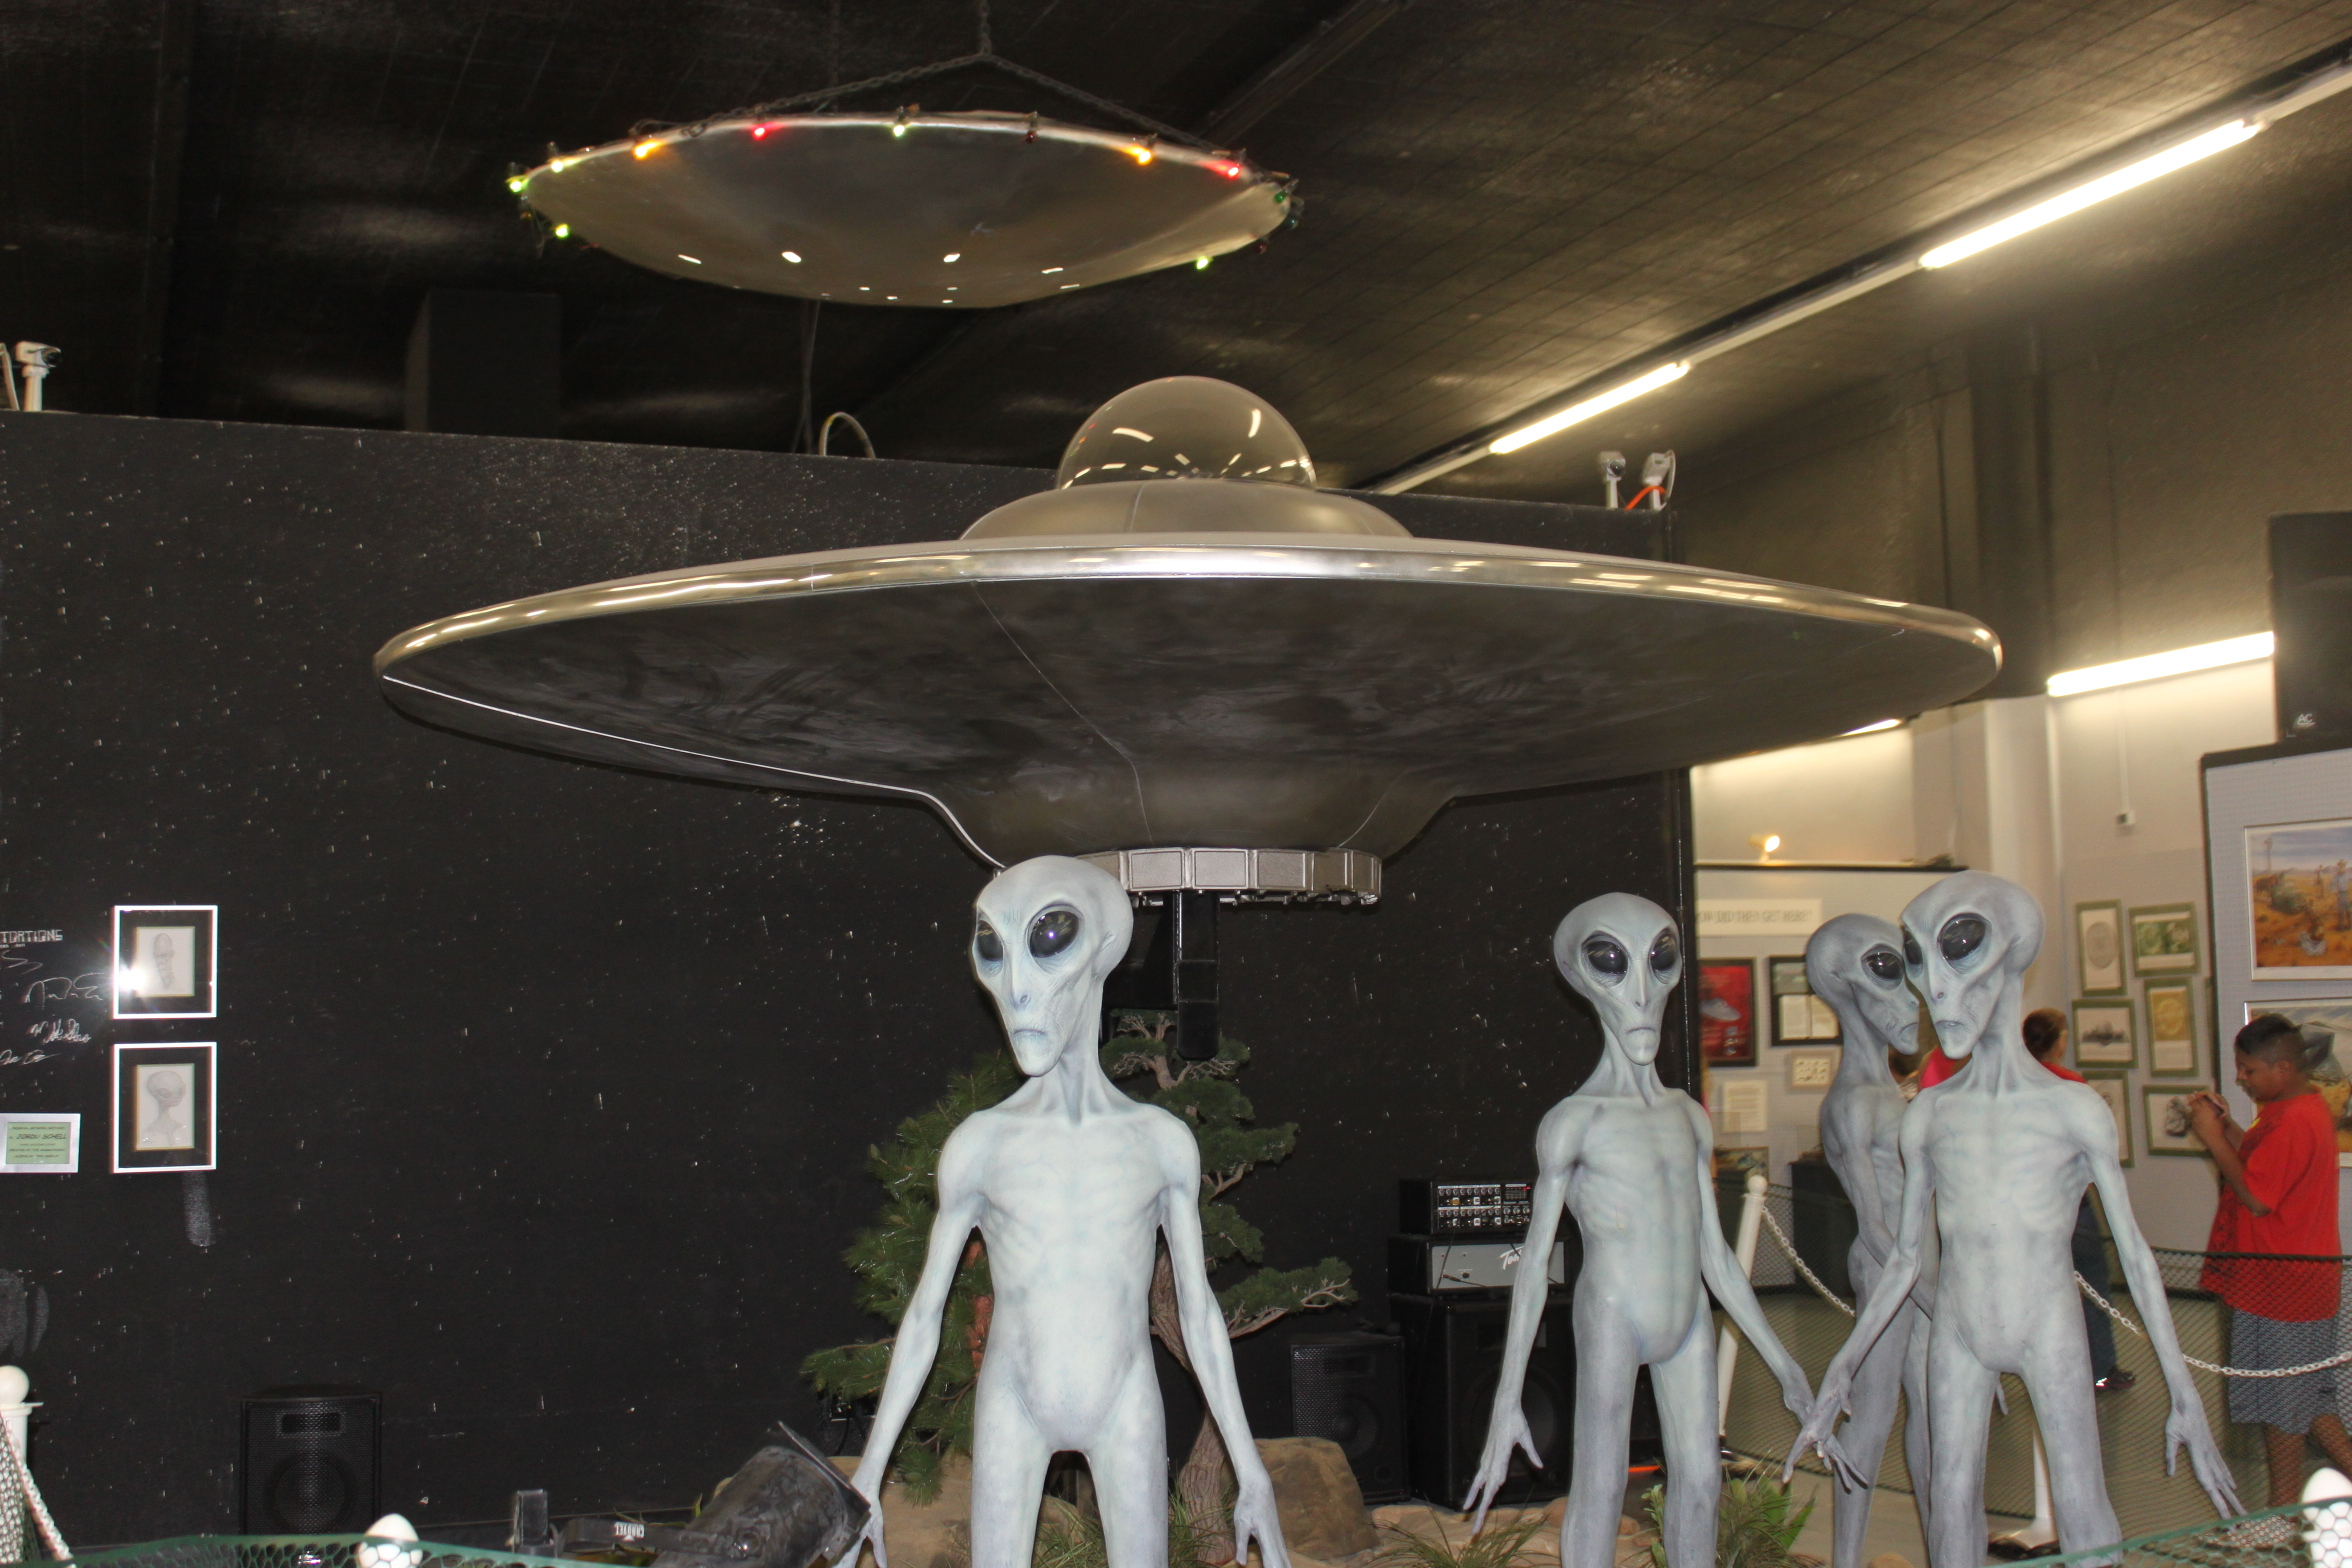 Weird Whereabouts: Alien Sighting in Roswell, New Mexico